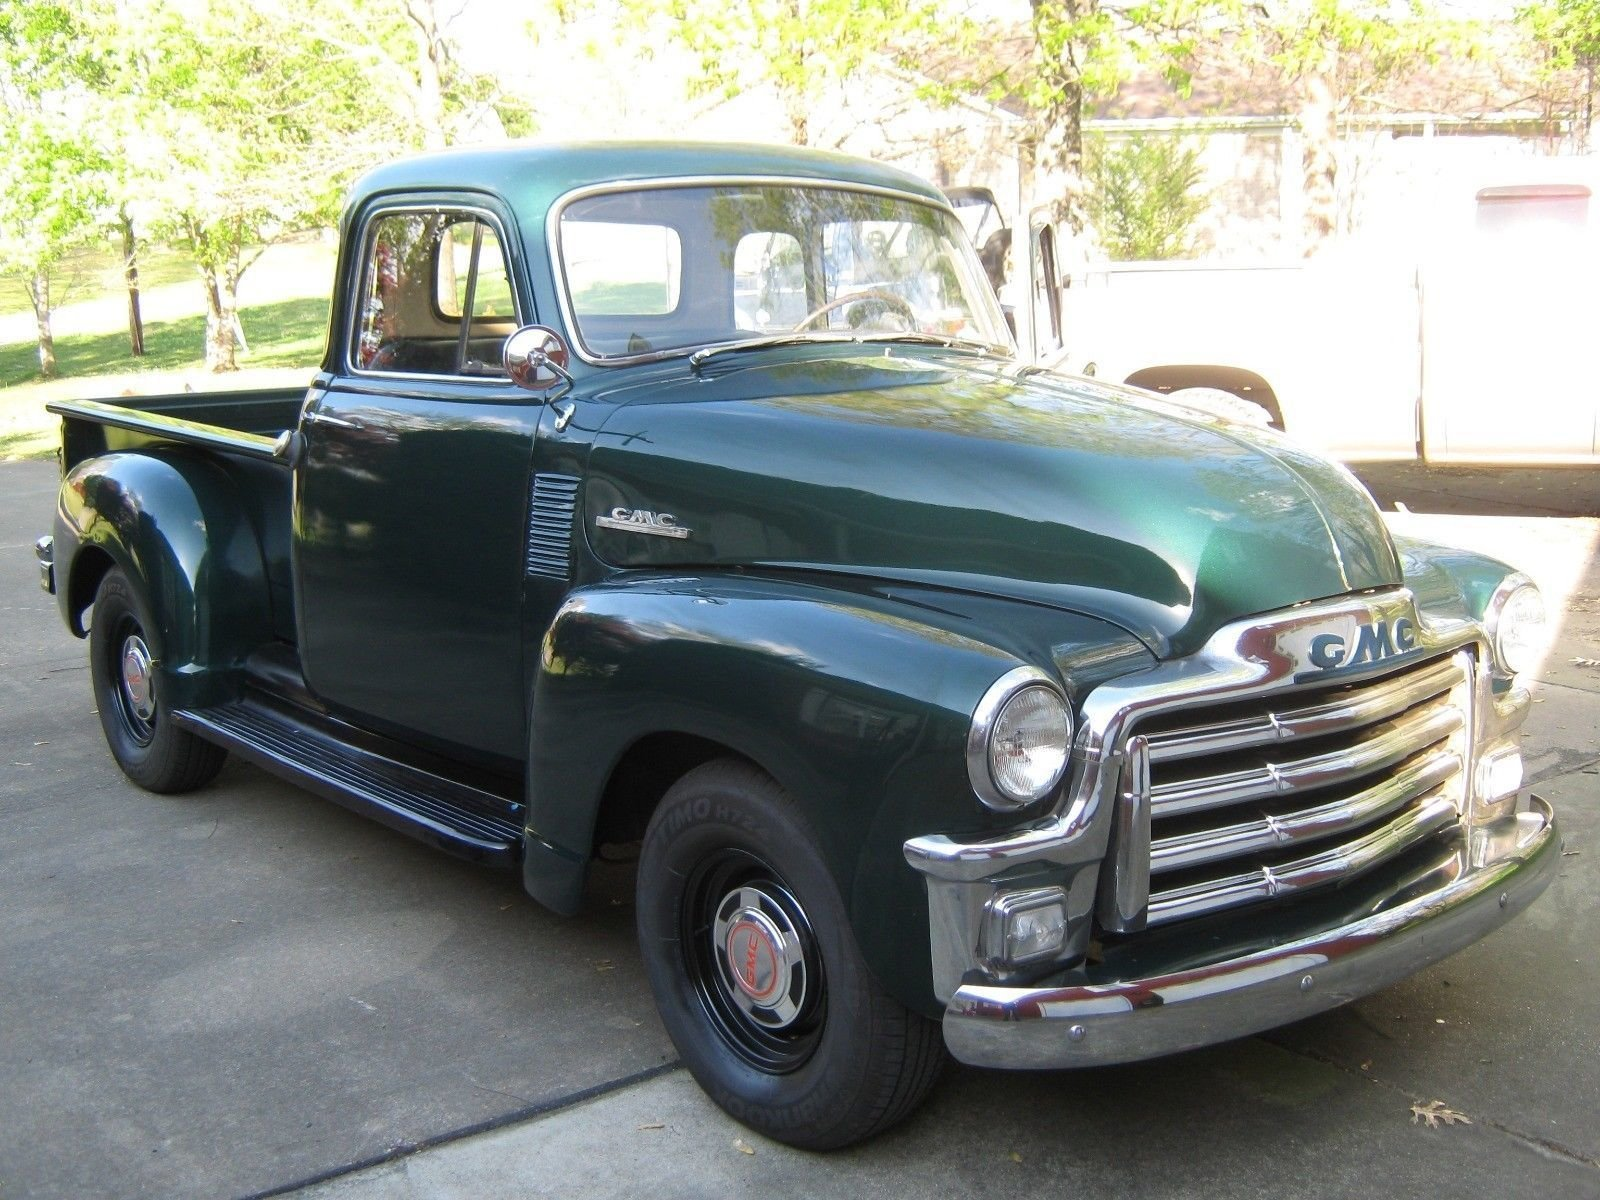 1955 GMC PICK UP TRUCK